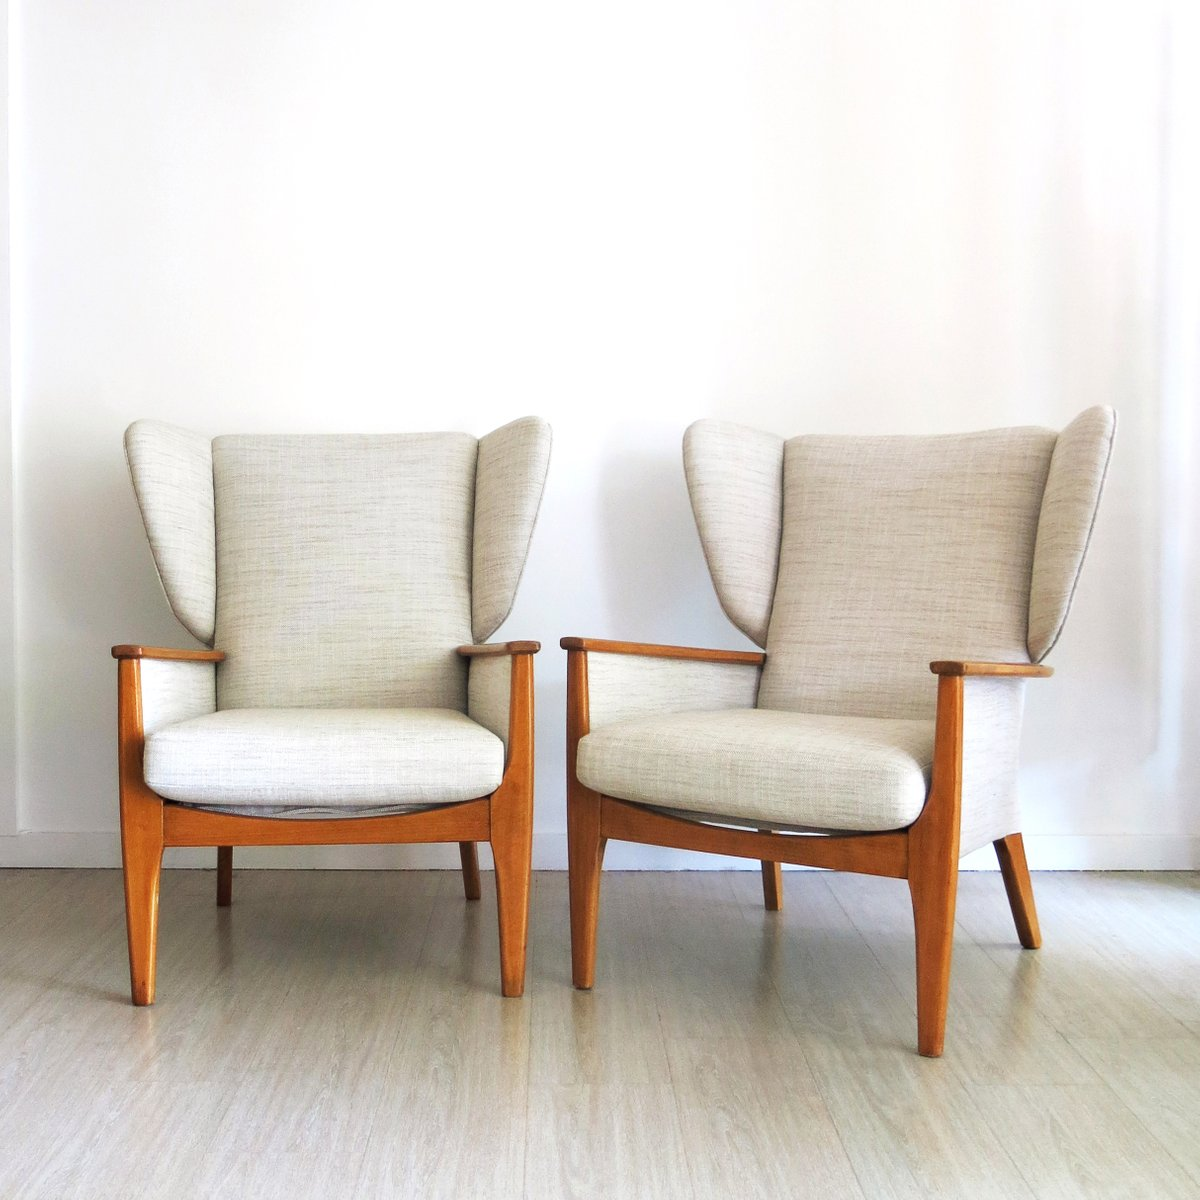 fauteuil oreilles vintage de parker knoll 1960s set de 2 en vente sur pamono. Black Bedroom Furniture Sets. Home Design Ideas